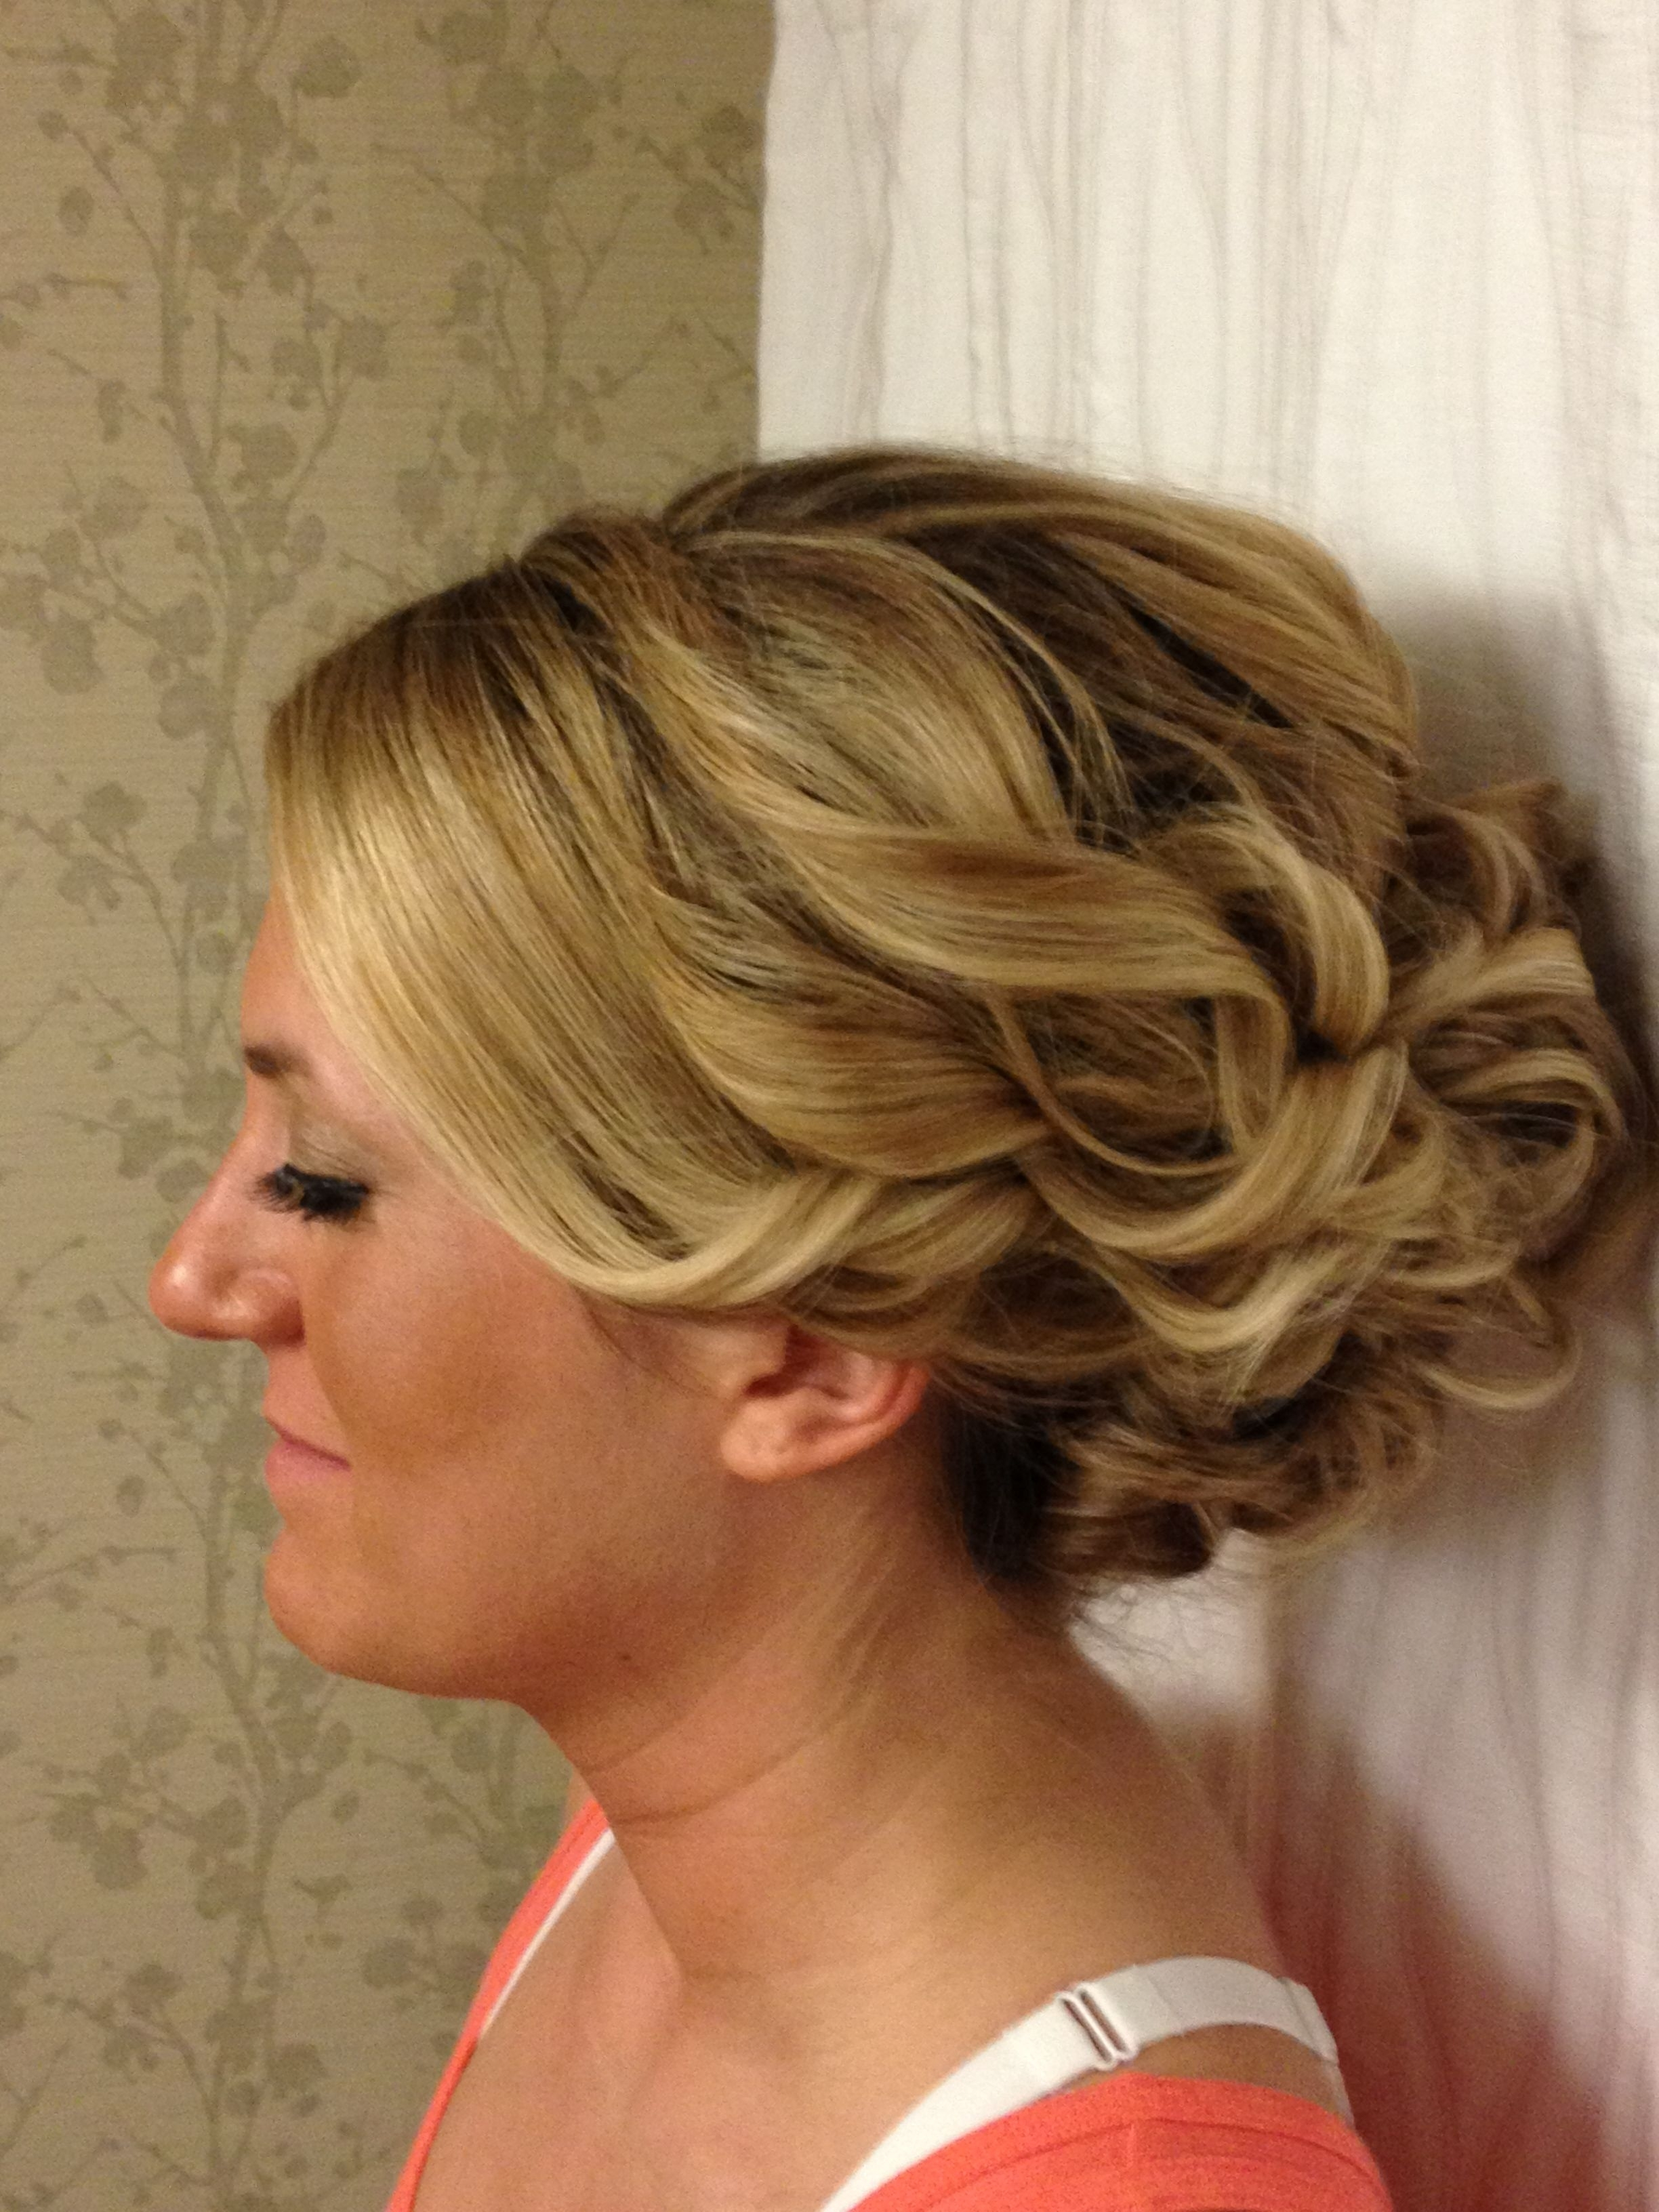 Well Known Wedding Hairstyles For Thick Hair In Updo For Long, Thick Hair For Homecoming Or A Wedding (View 12 of 15)